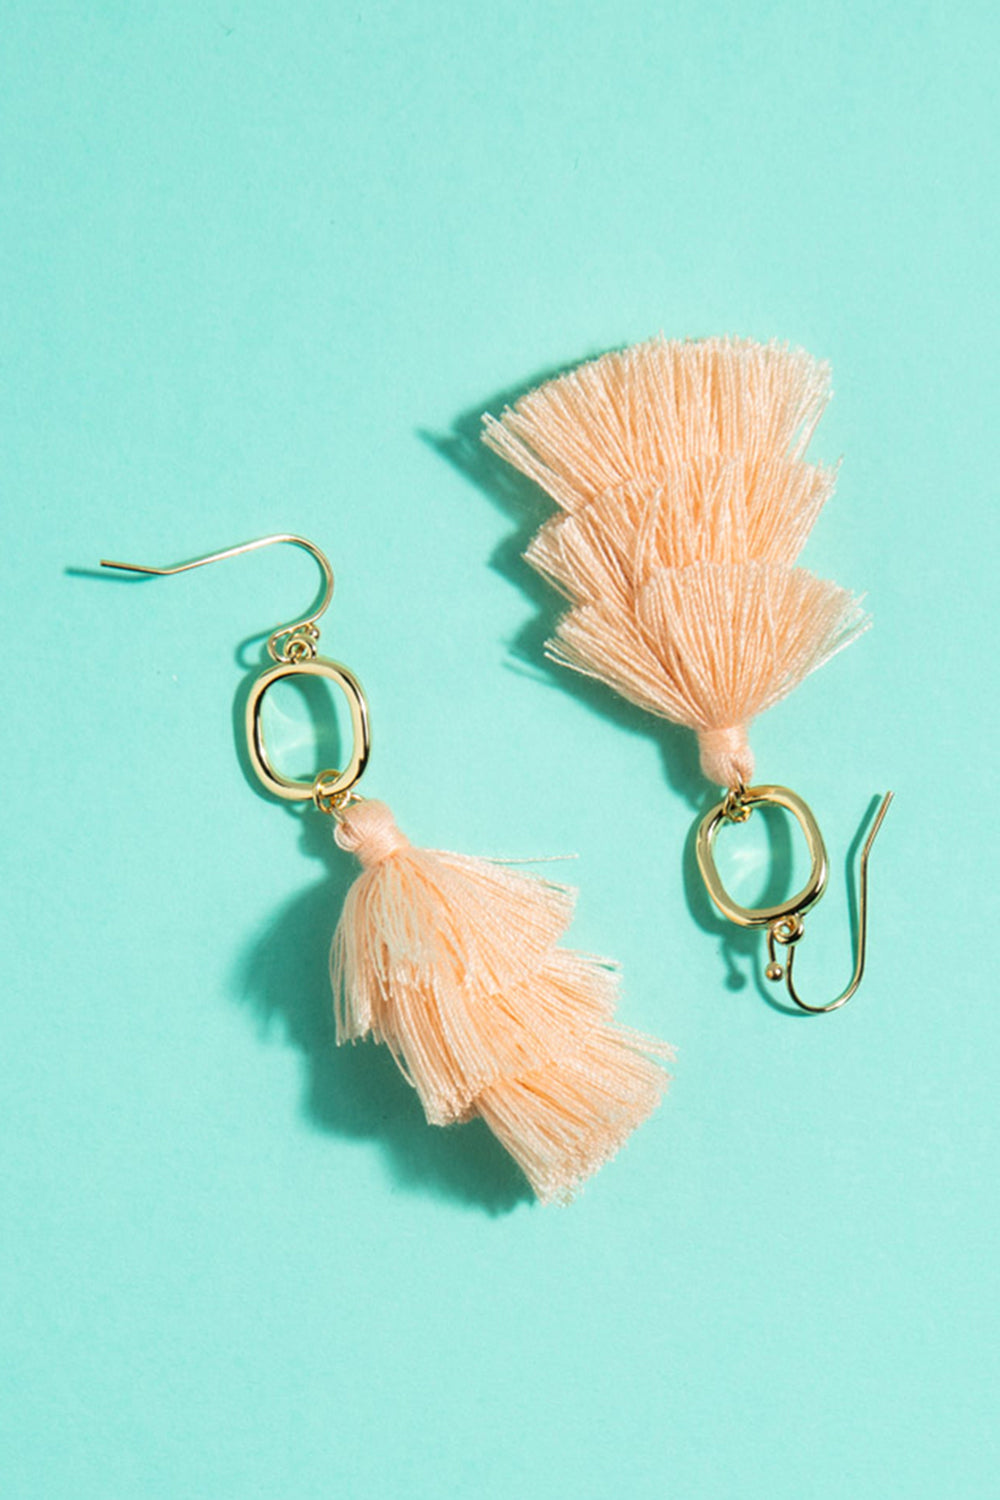 Type 1 Peachy Keen Earrings